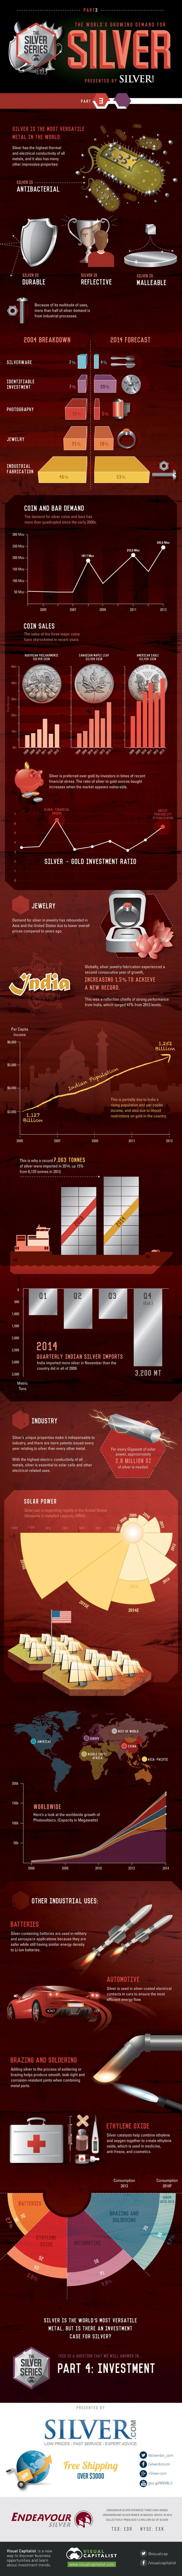 Visual Capitalist looks at the worlds growing demand for silver - AgAuNEWS